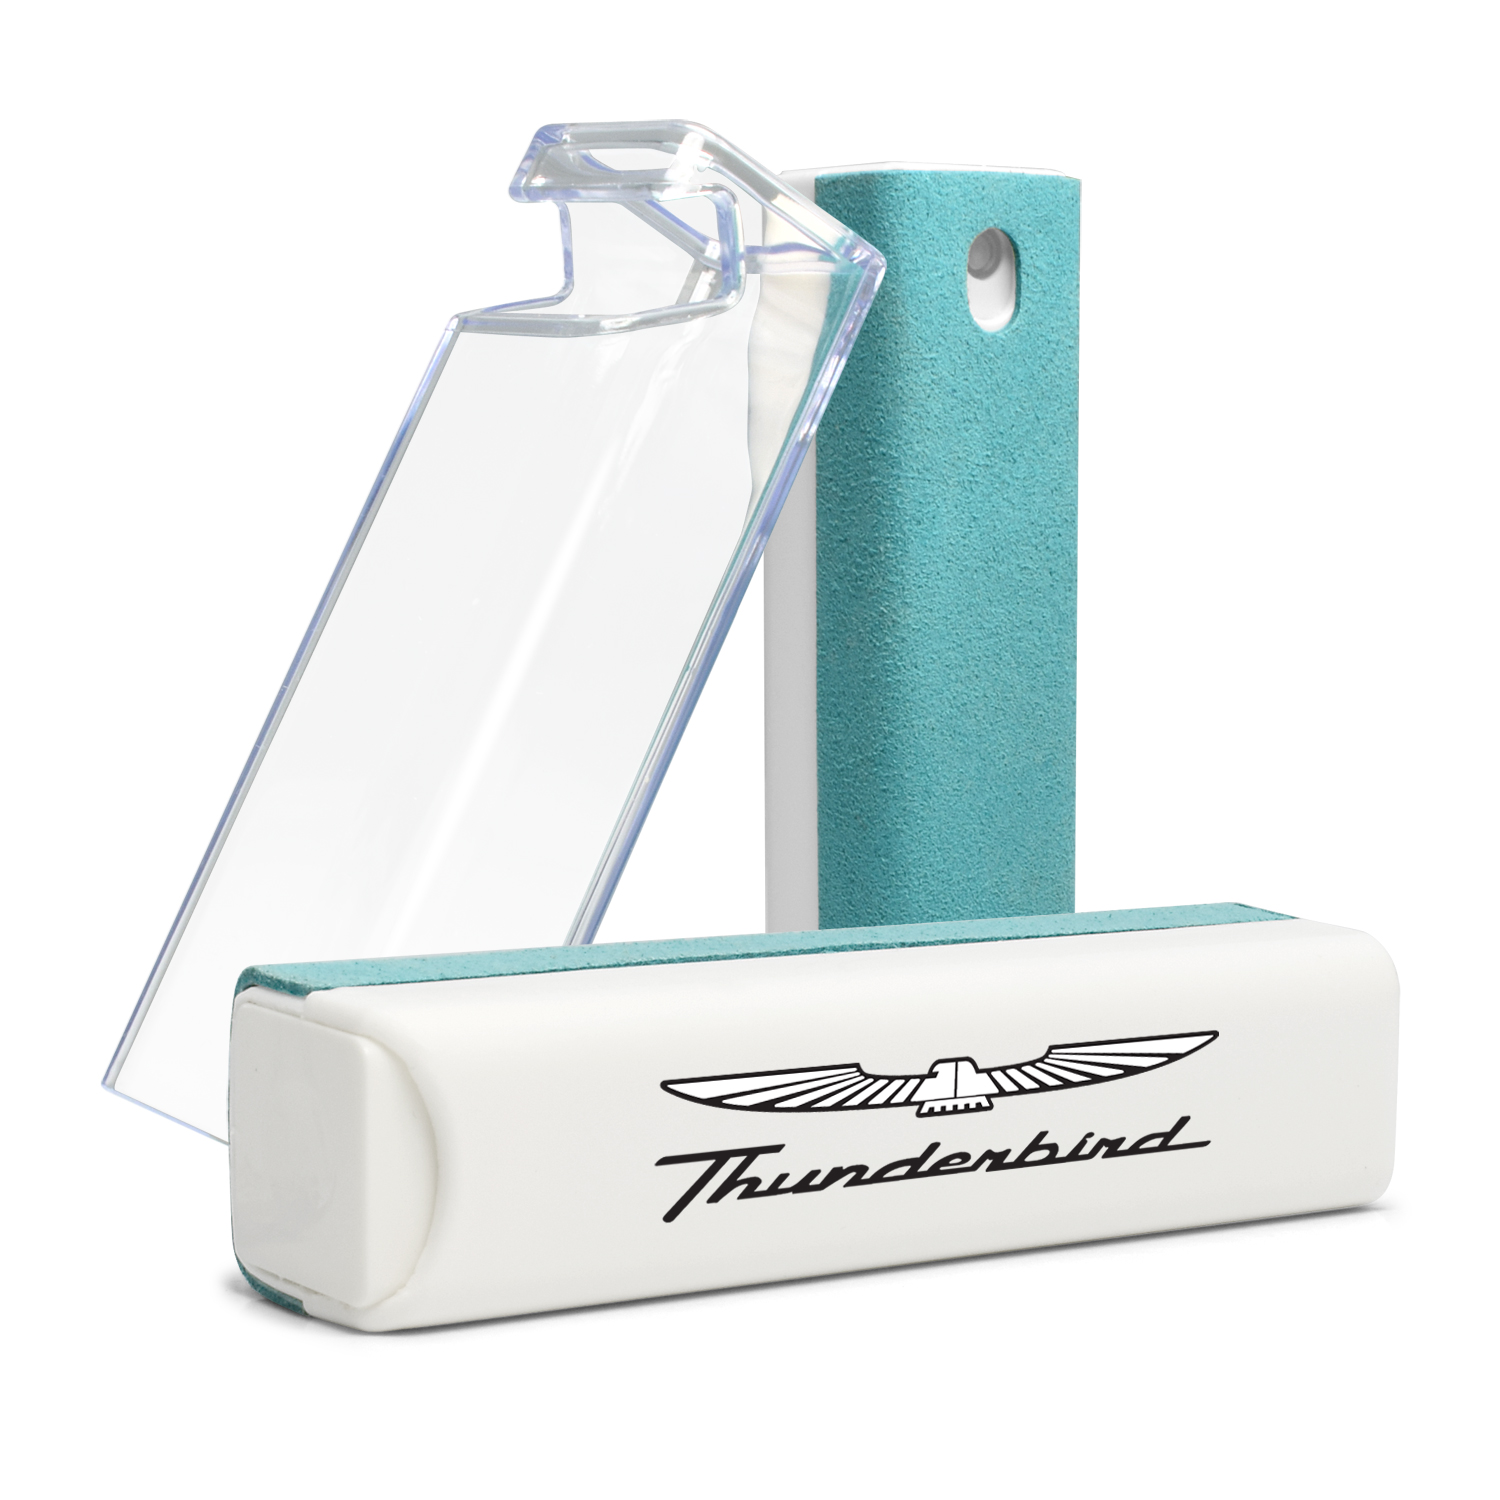 Ford Thunderbird Blue Microfiber Screen Cleaner for Car Navigation, Cell Phone